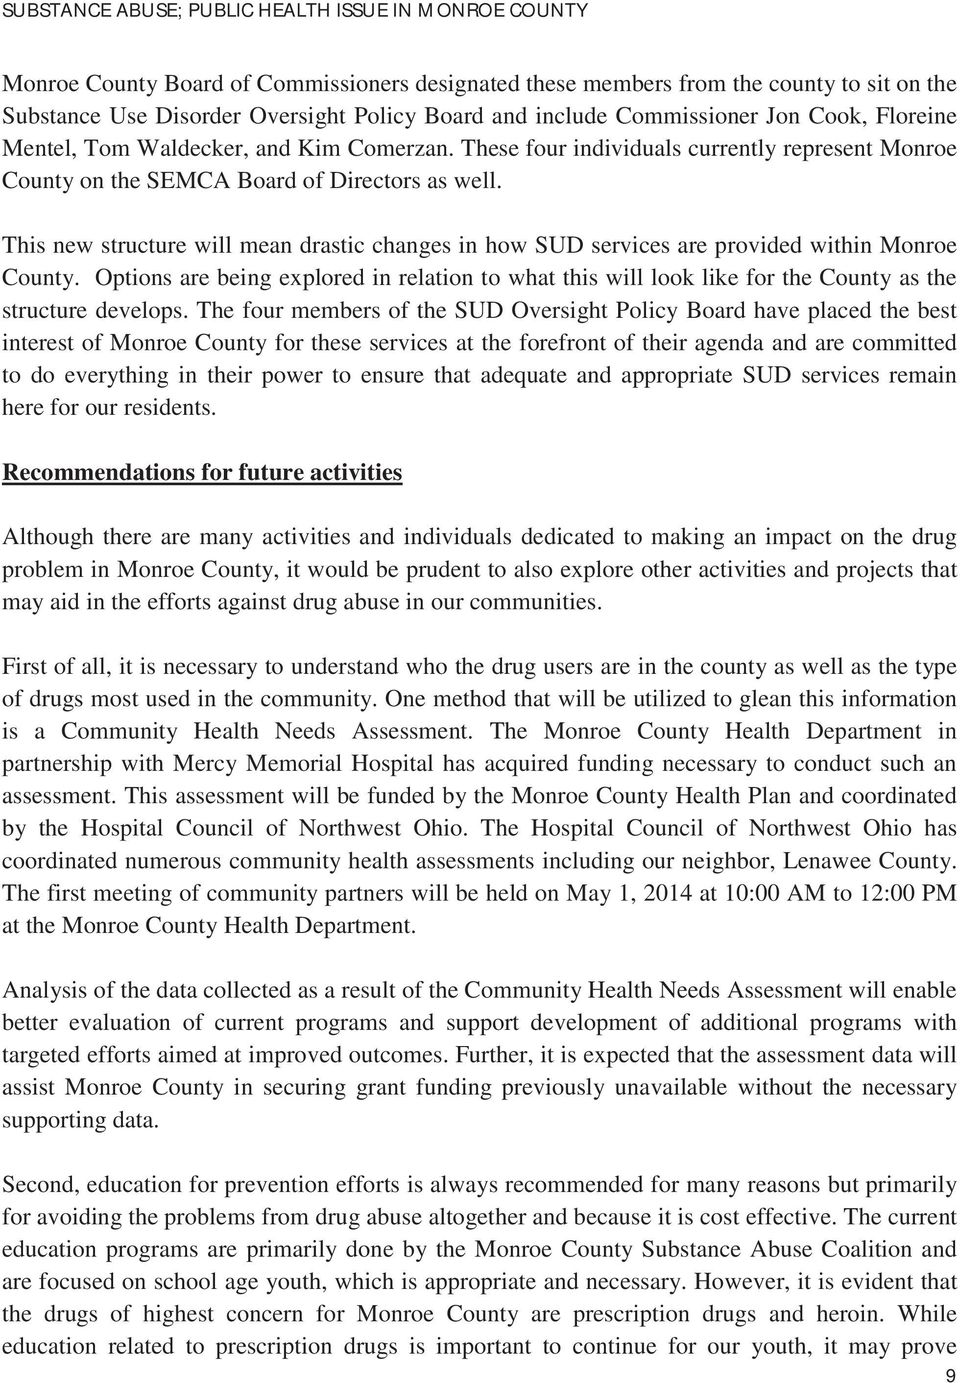 This new structure will mean drastic changes in how SUD services are provided within Monroe County.